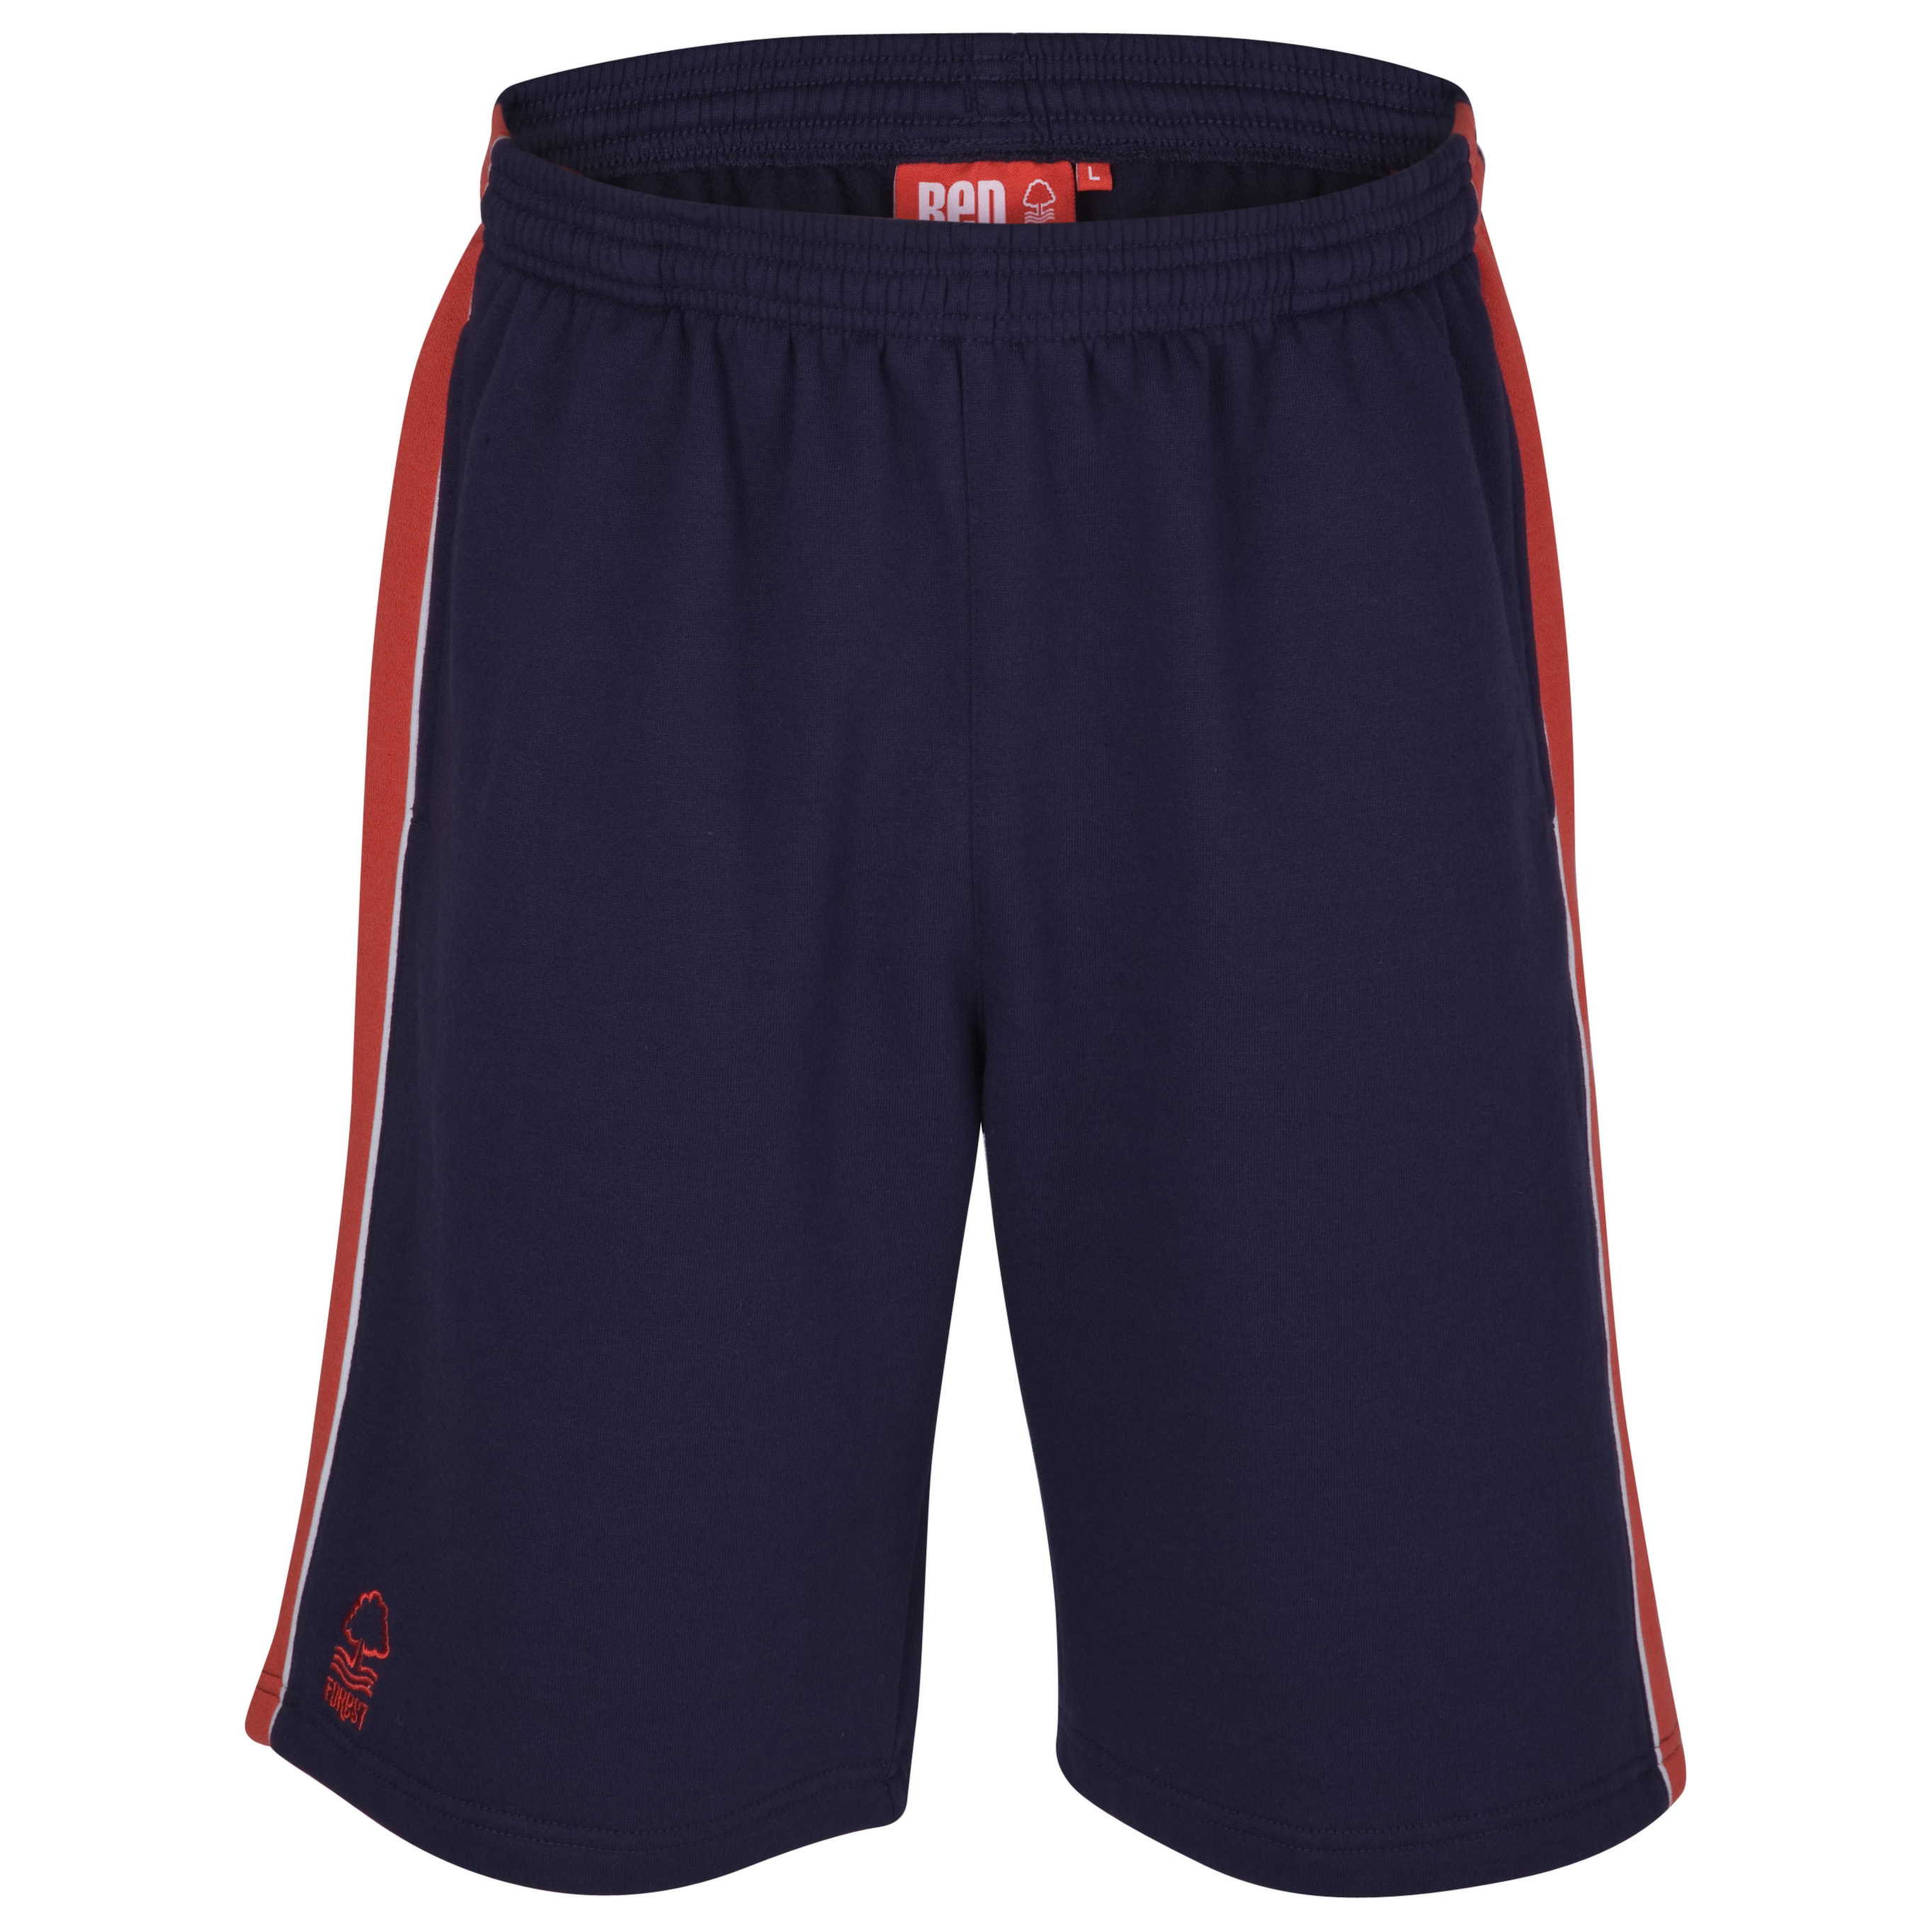 Nottingham Forest Essential Pebble Short - Navy/Red - Older Boys